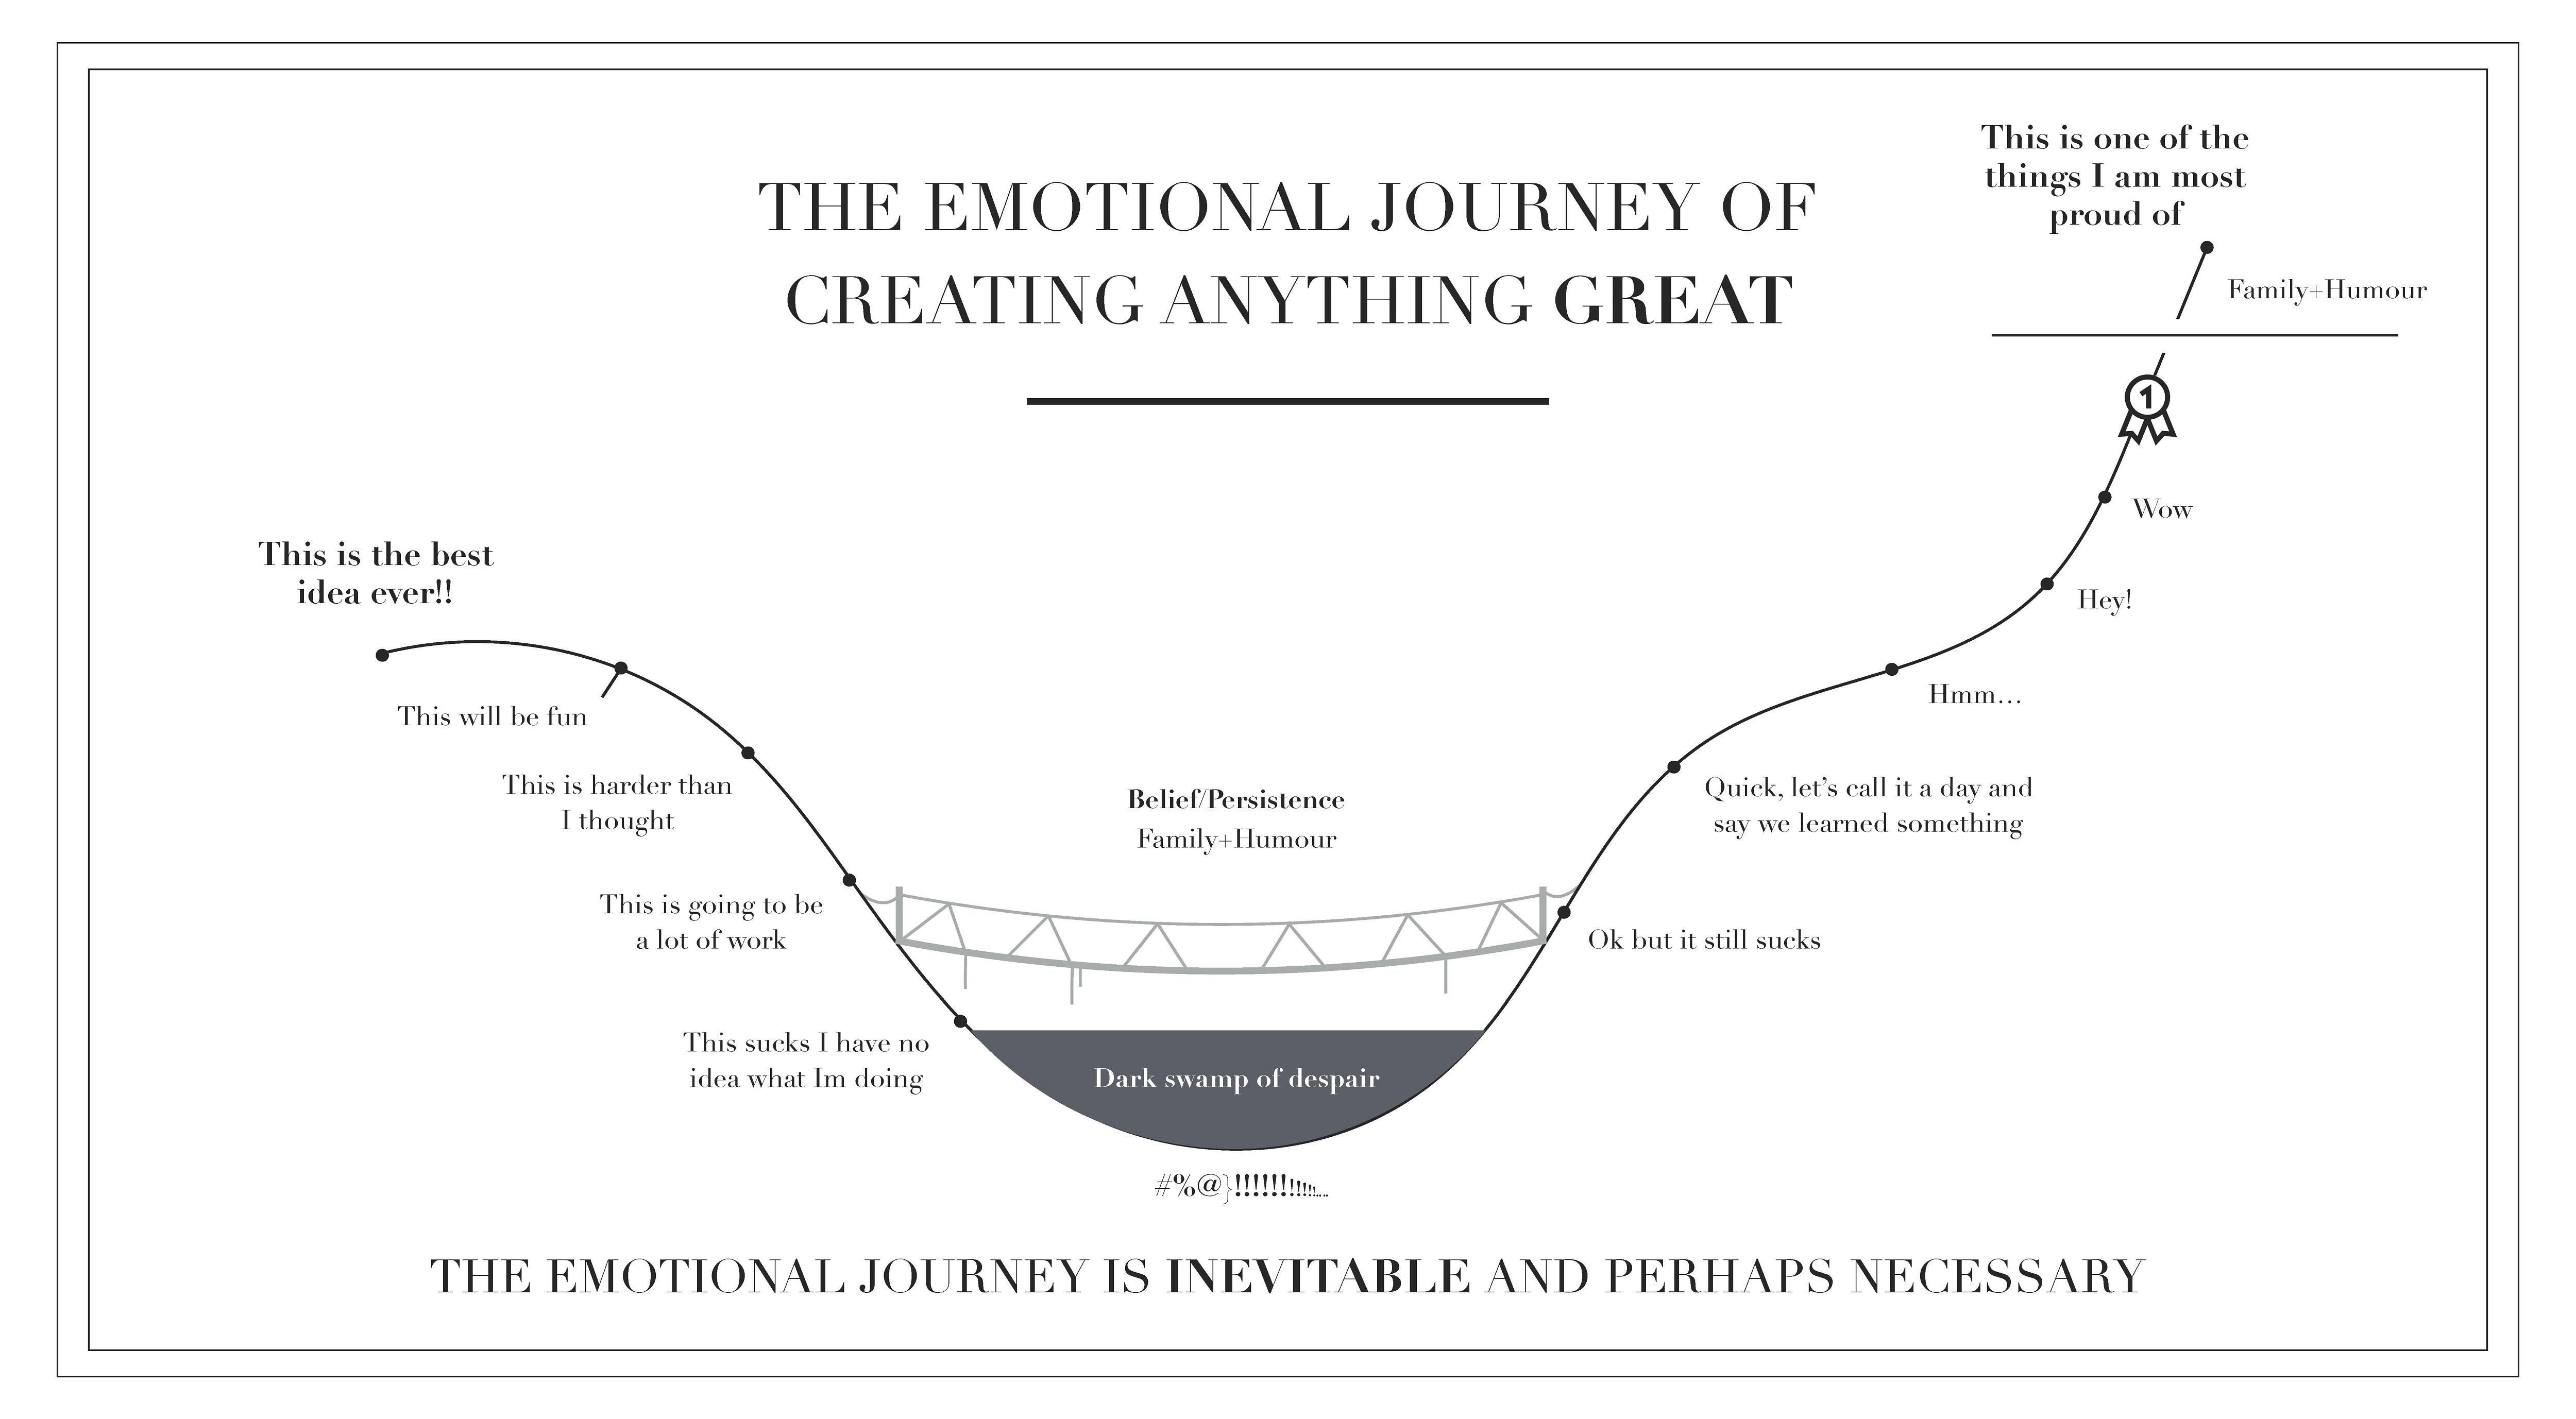 Emmotional journey